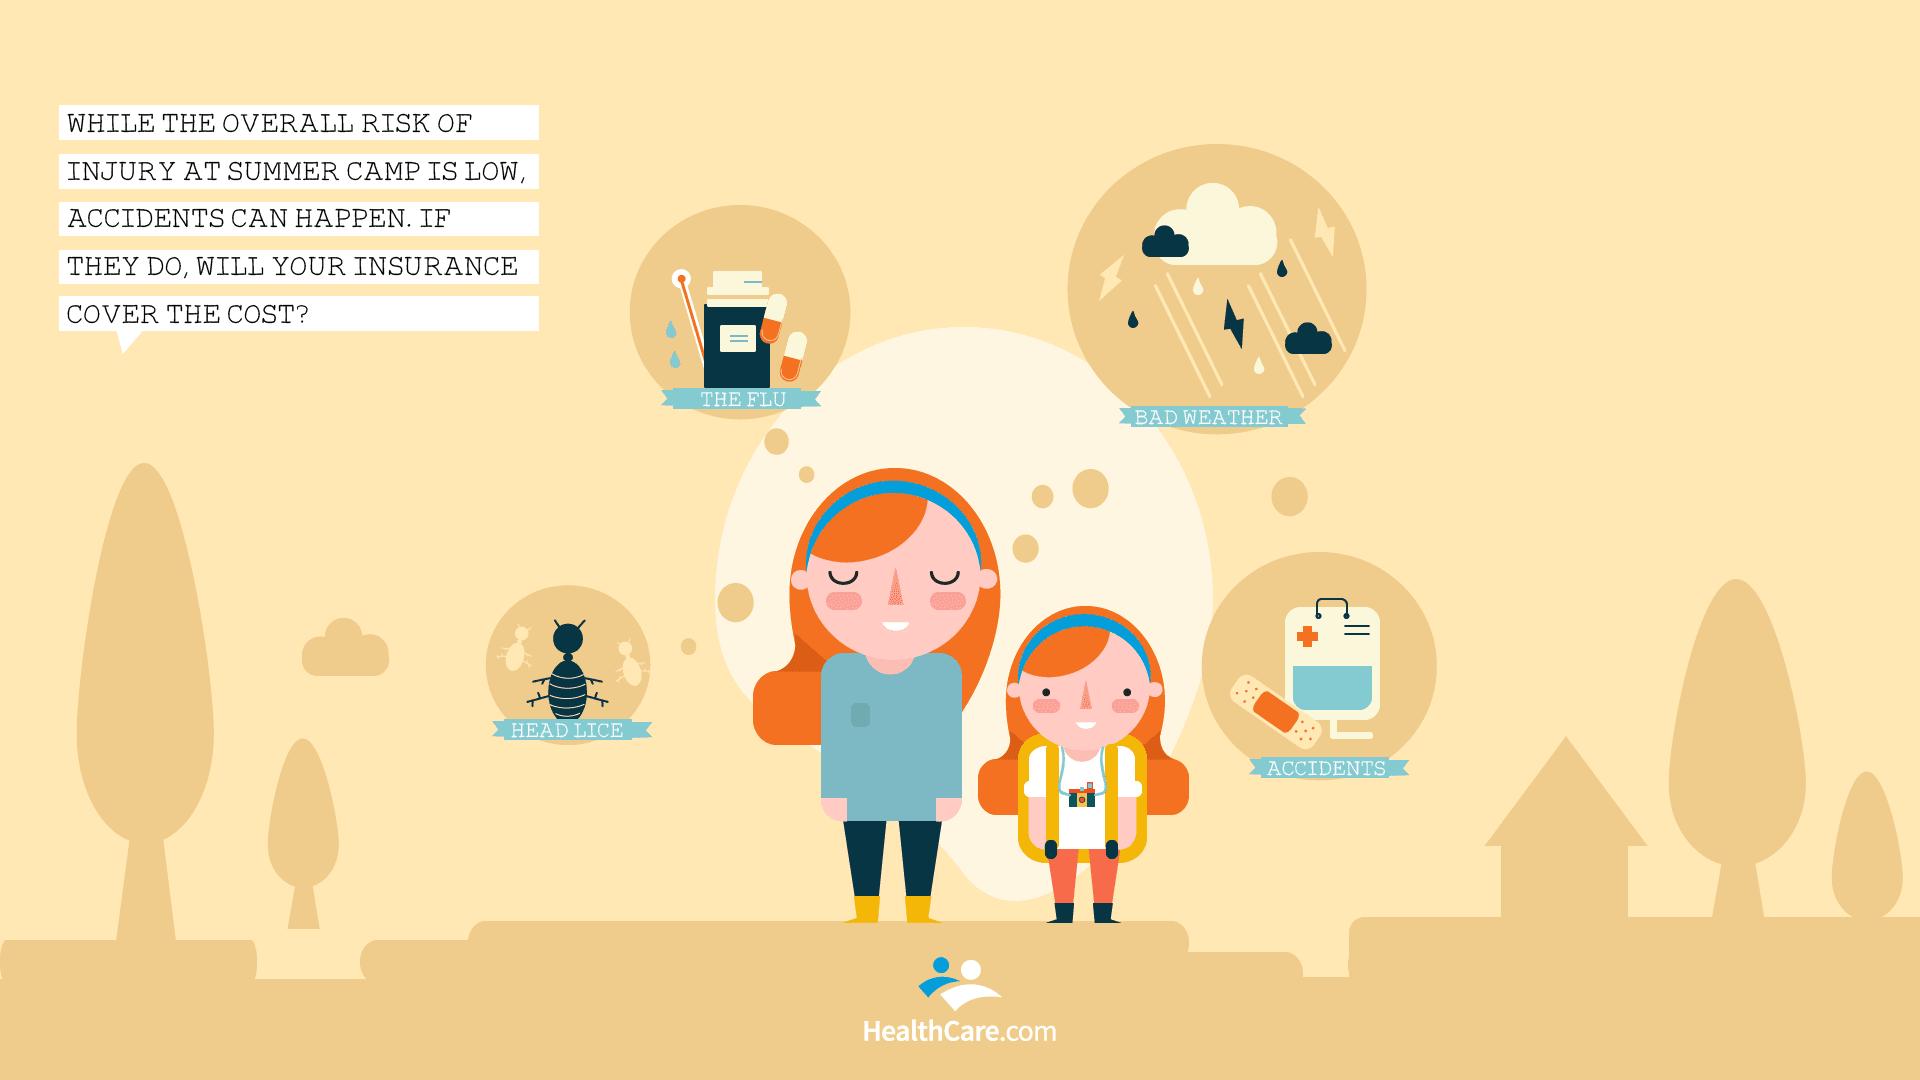 Health Insurance for Summer Camp: Illustration | The CheckUp by HealthCare.com